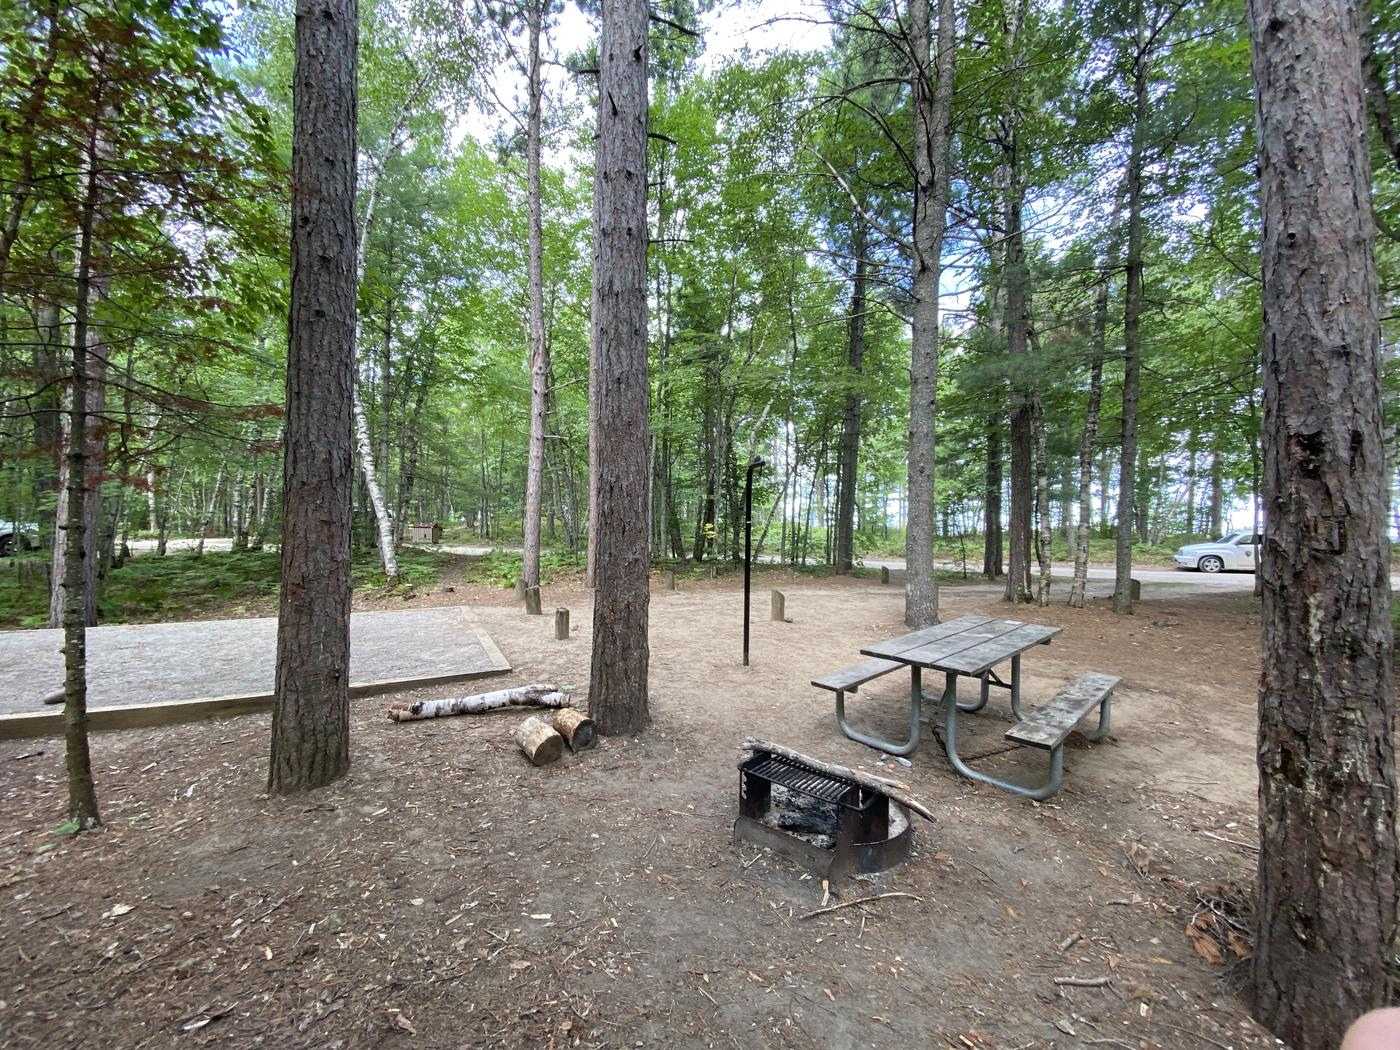 Tent site,picnic table, fire ring and lantern pole.